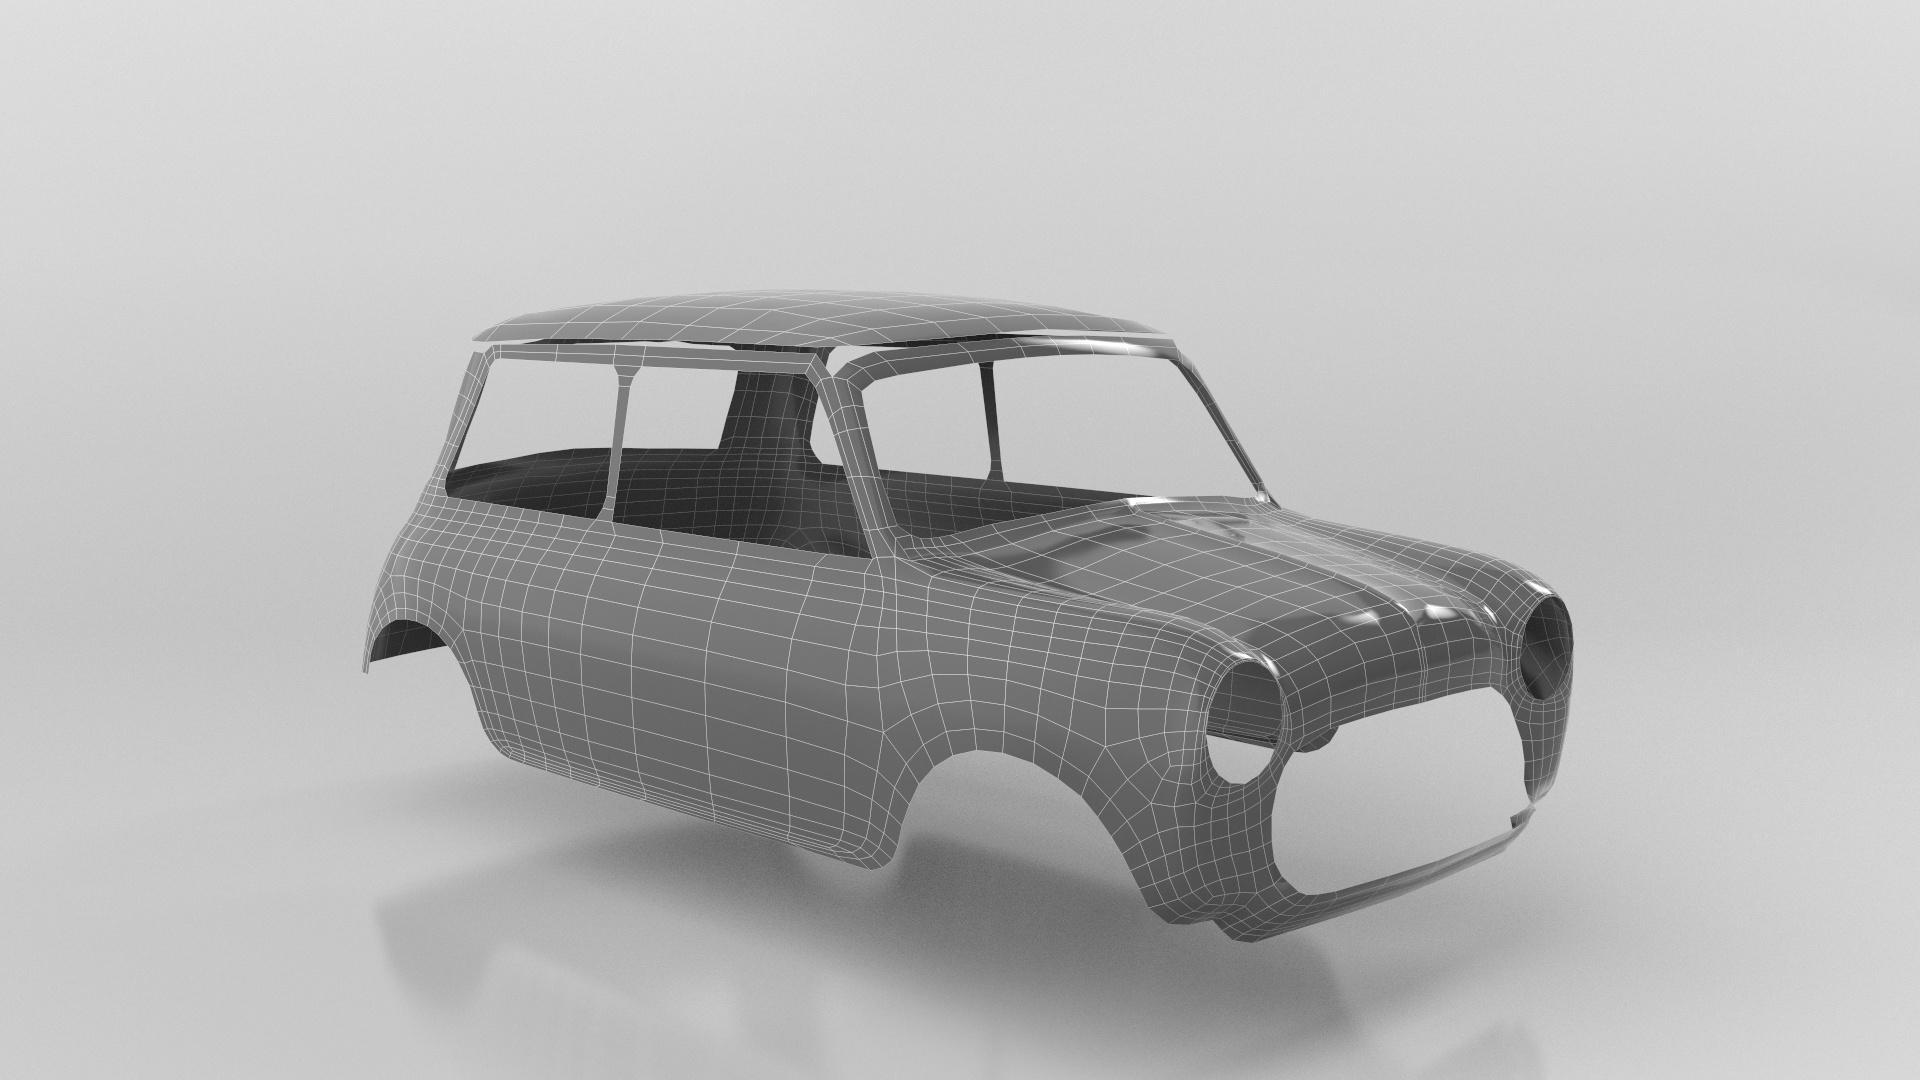 Monte Carlo Mini - Car Render Challenge 2020